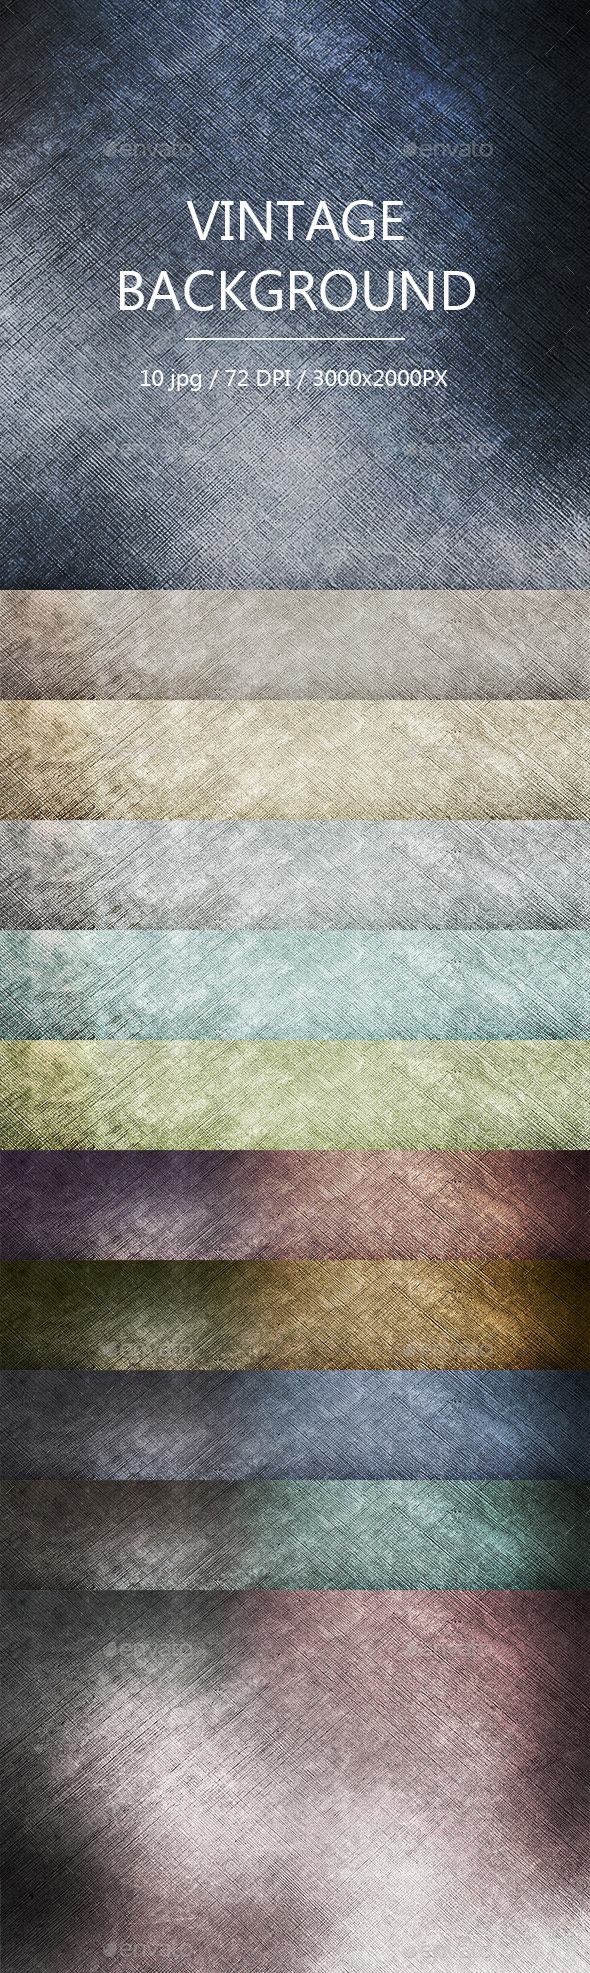 GraphicRiver Vintage Background 21133771